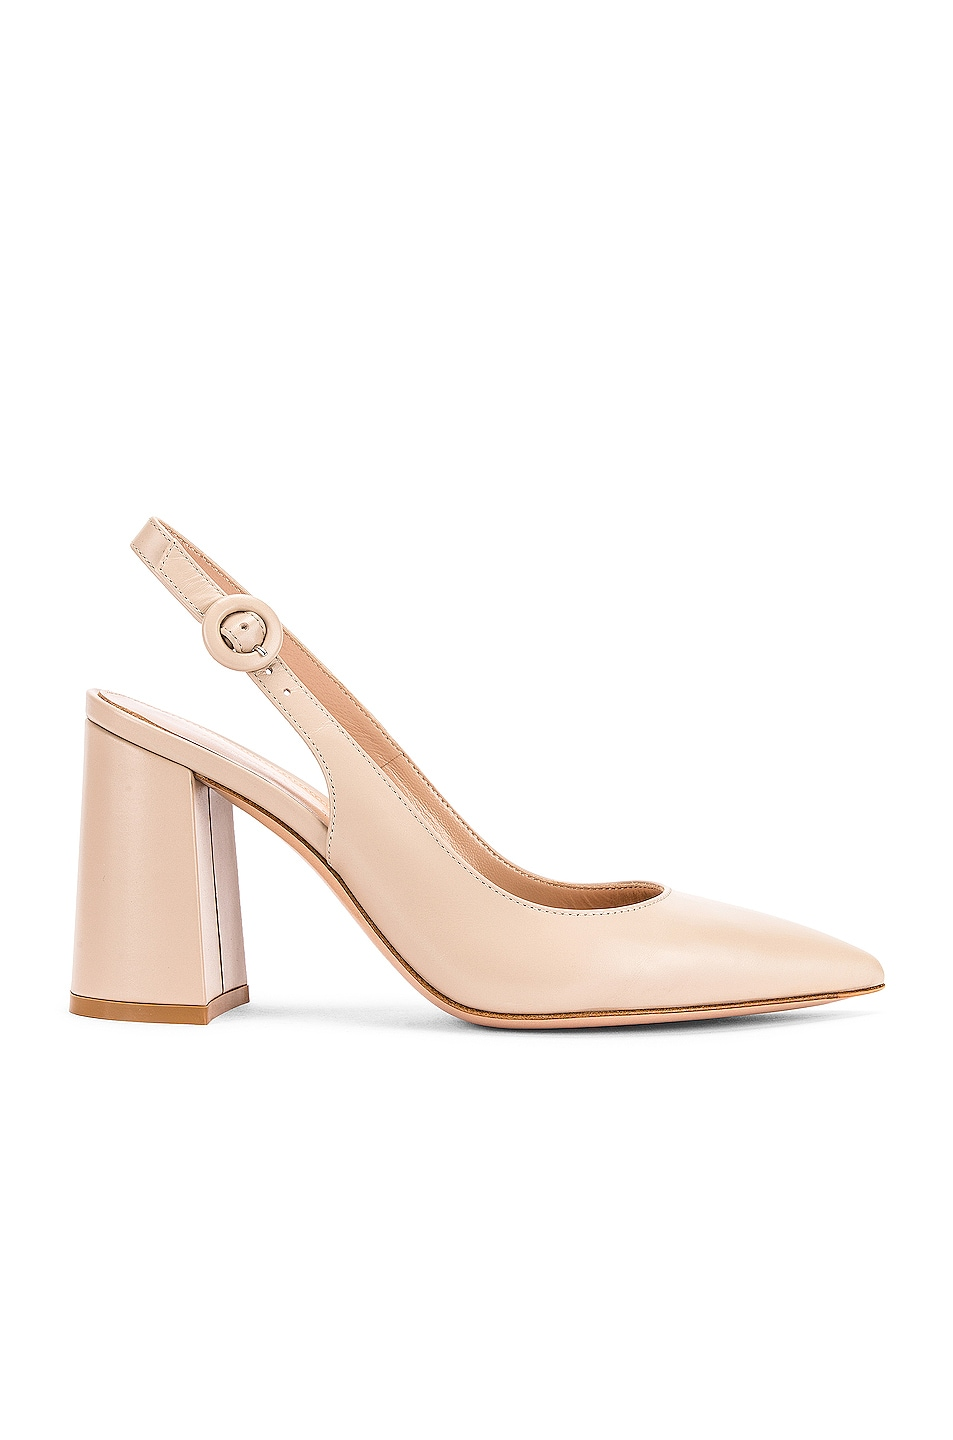 Image 1 of Gianvito Rossi Vitello Slingback Sandals in Mousse